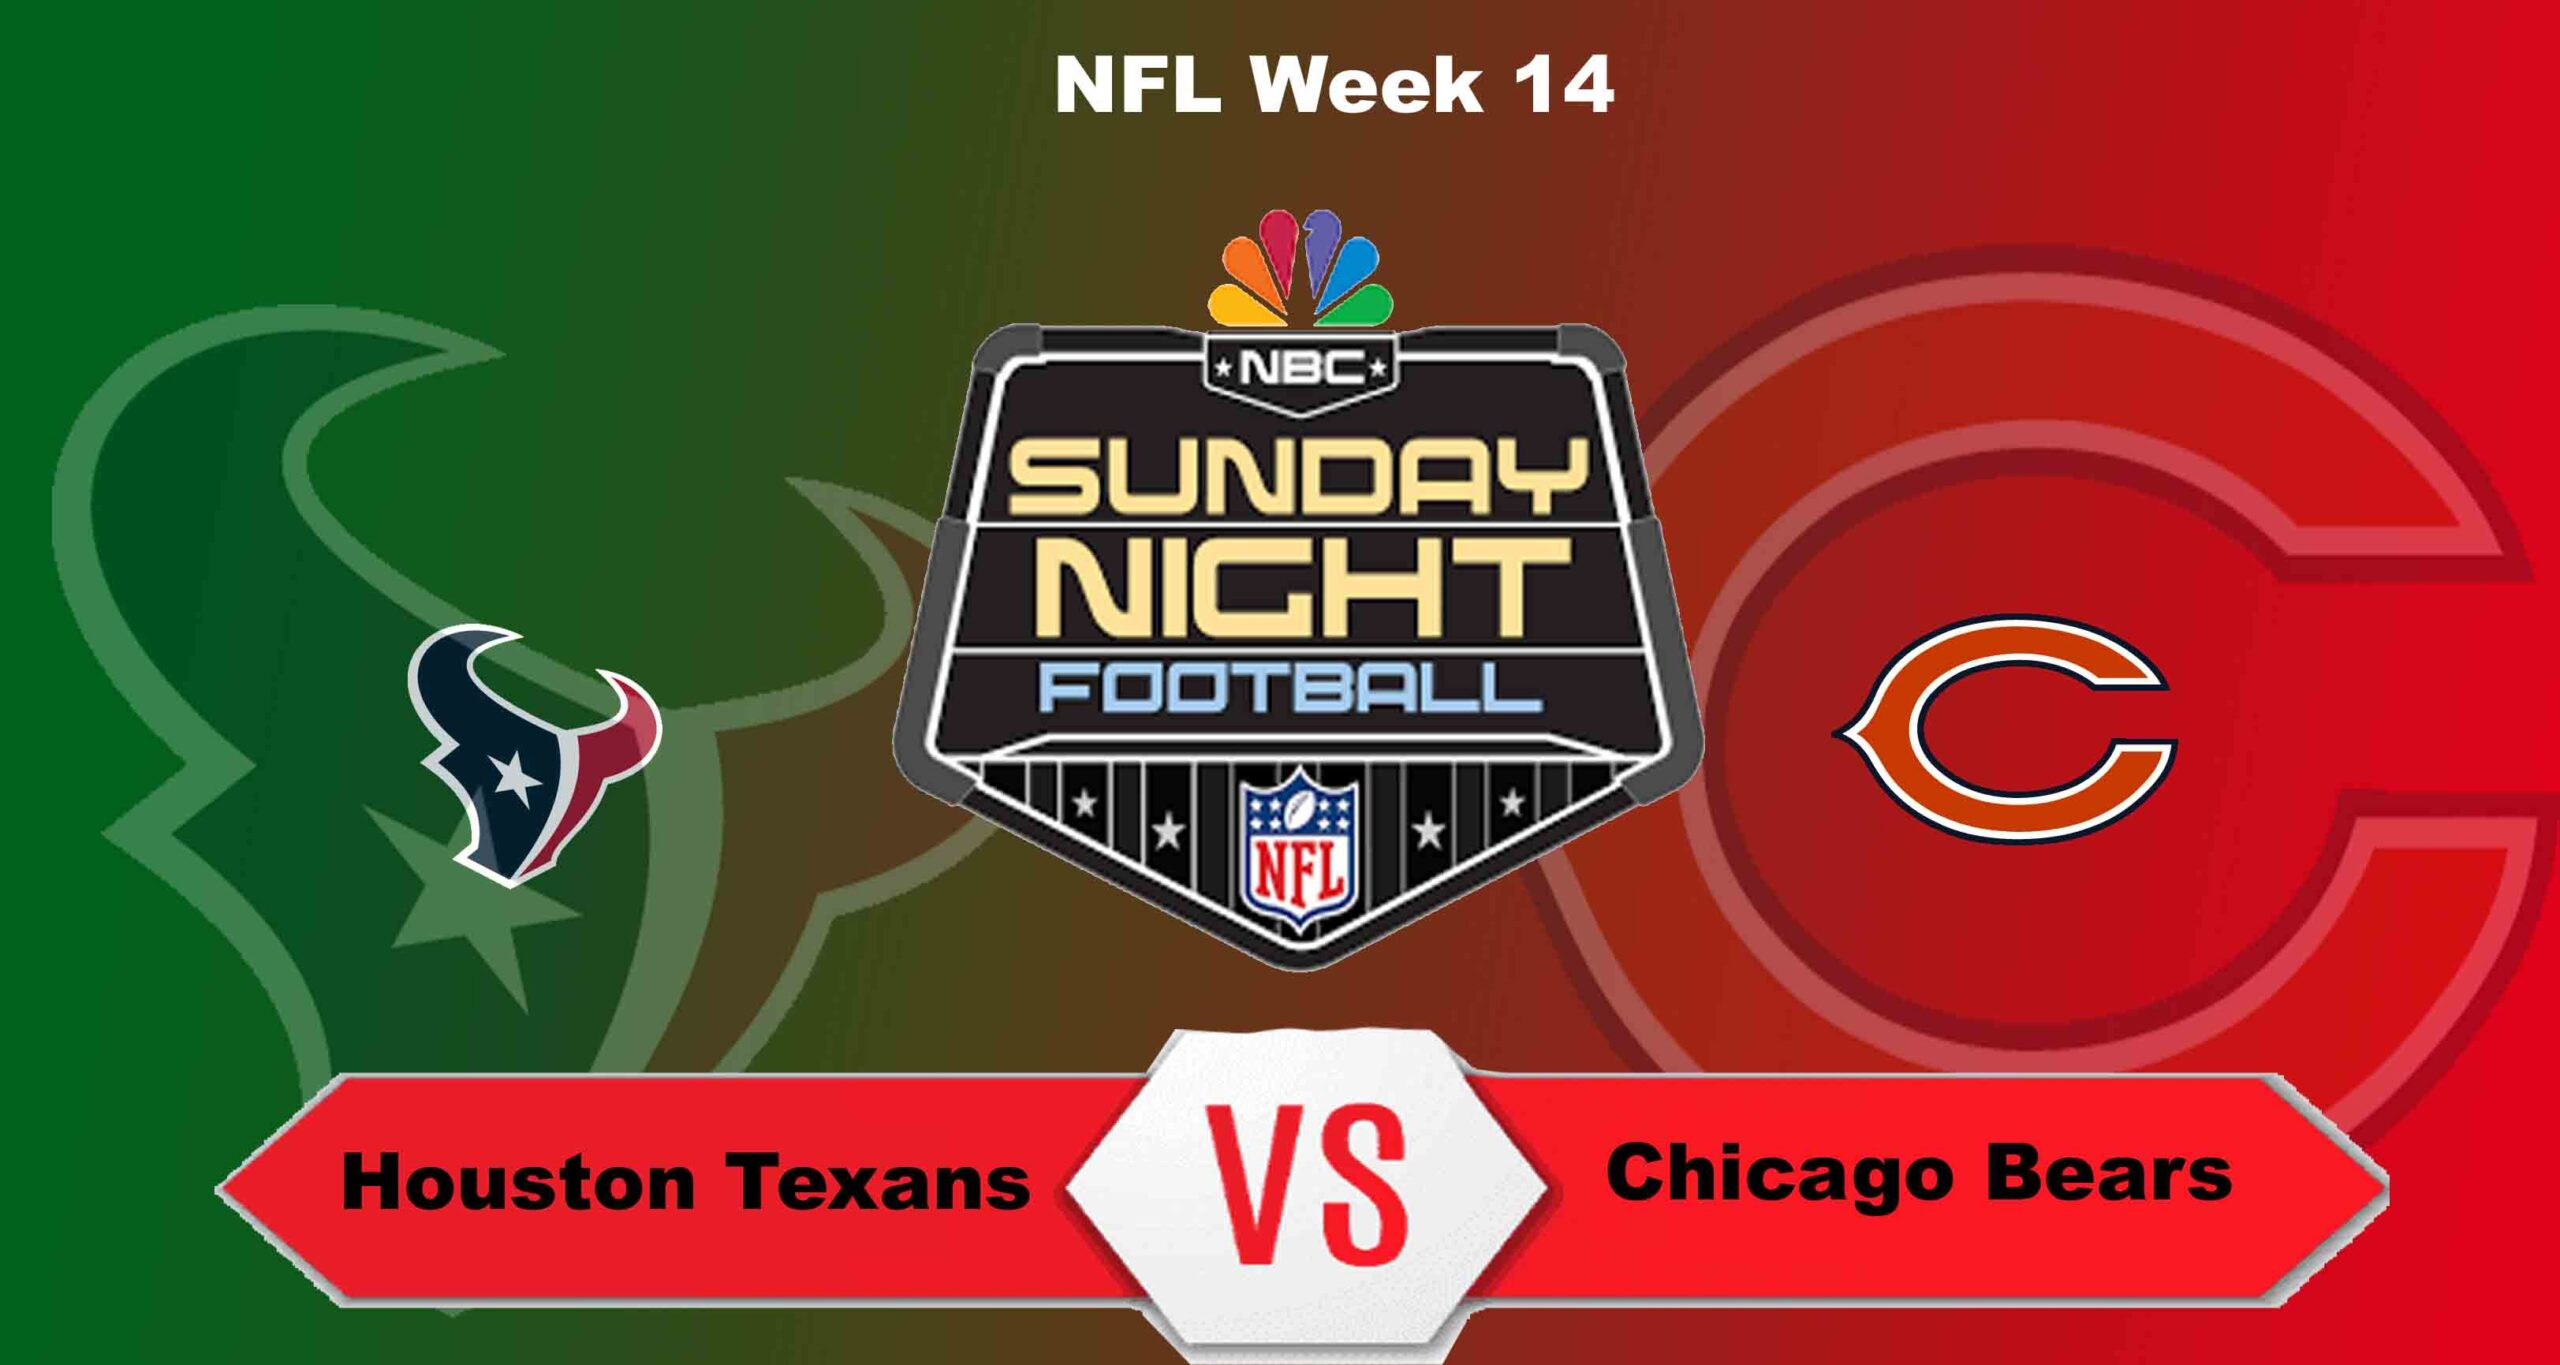 Houston-Texans-vs-Chicago-Bears